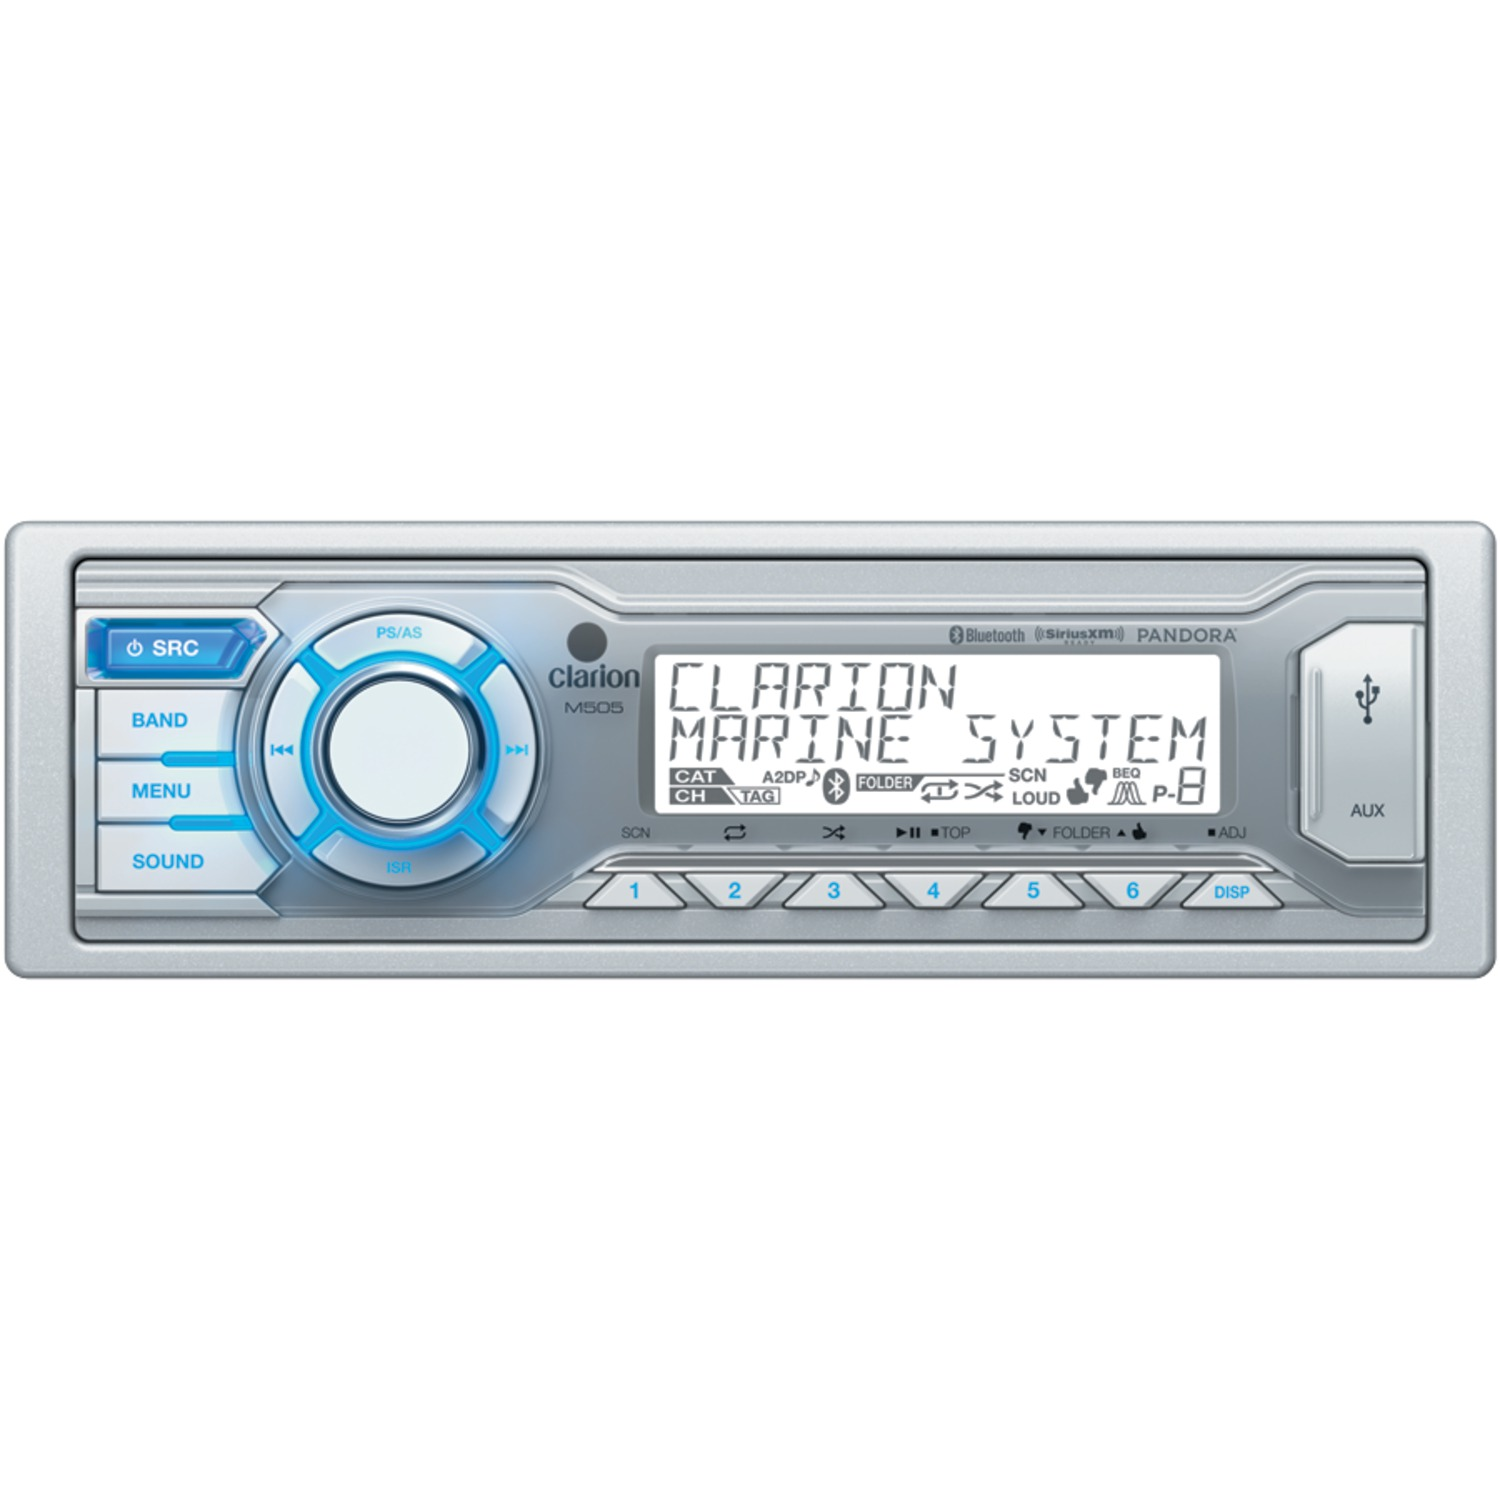 CLARION M505 Marine Single-DIN In-Dash USB/MP3/WMA Receiver with